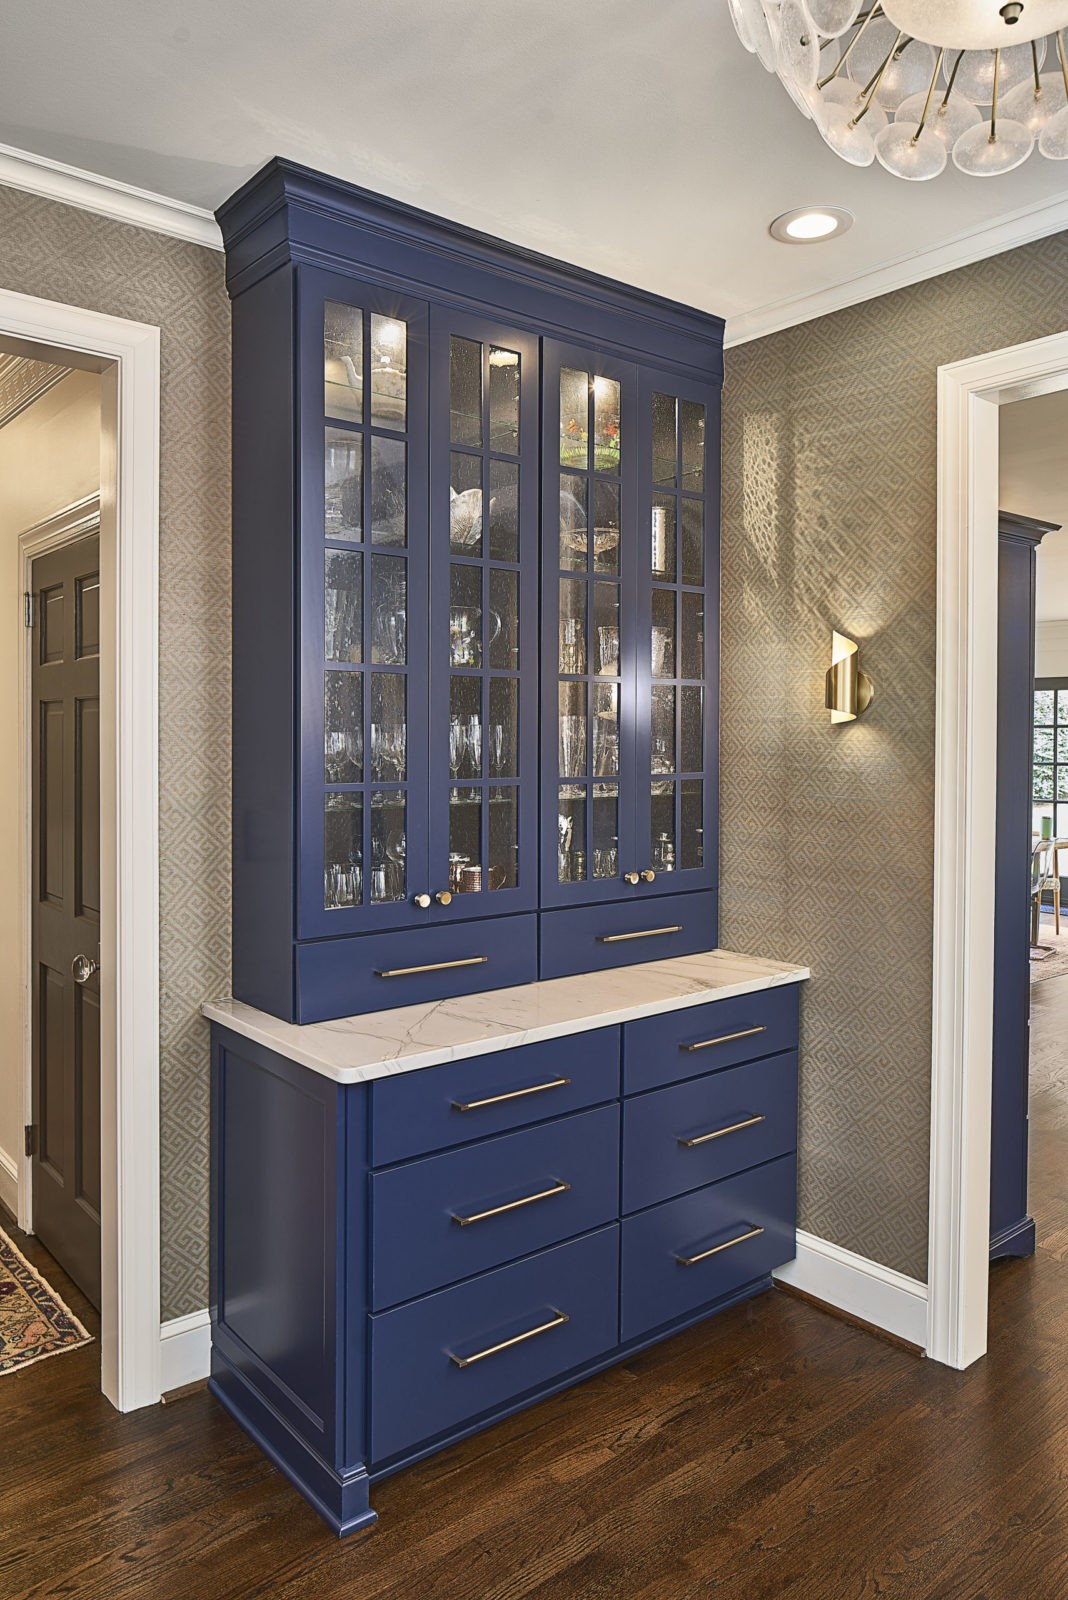 butlers-pantry-design-kitchen-remodel